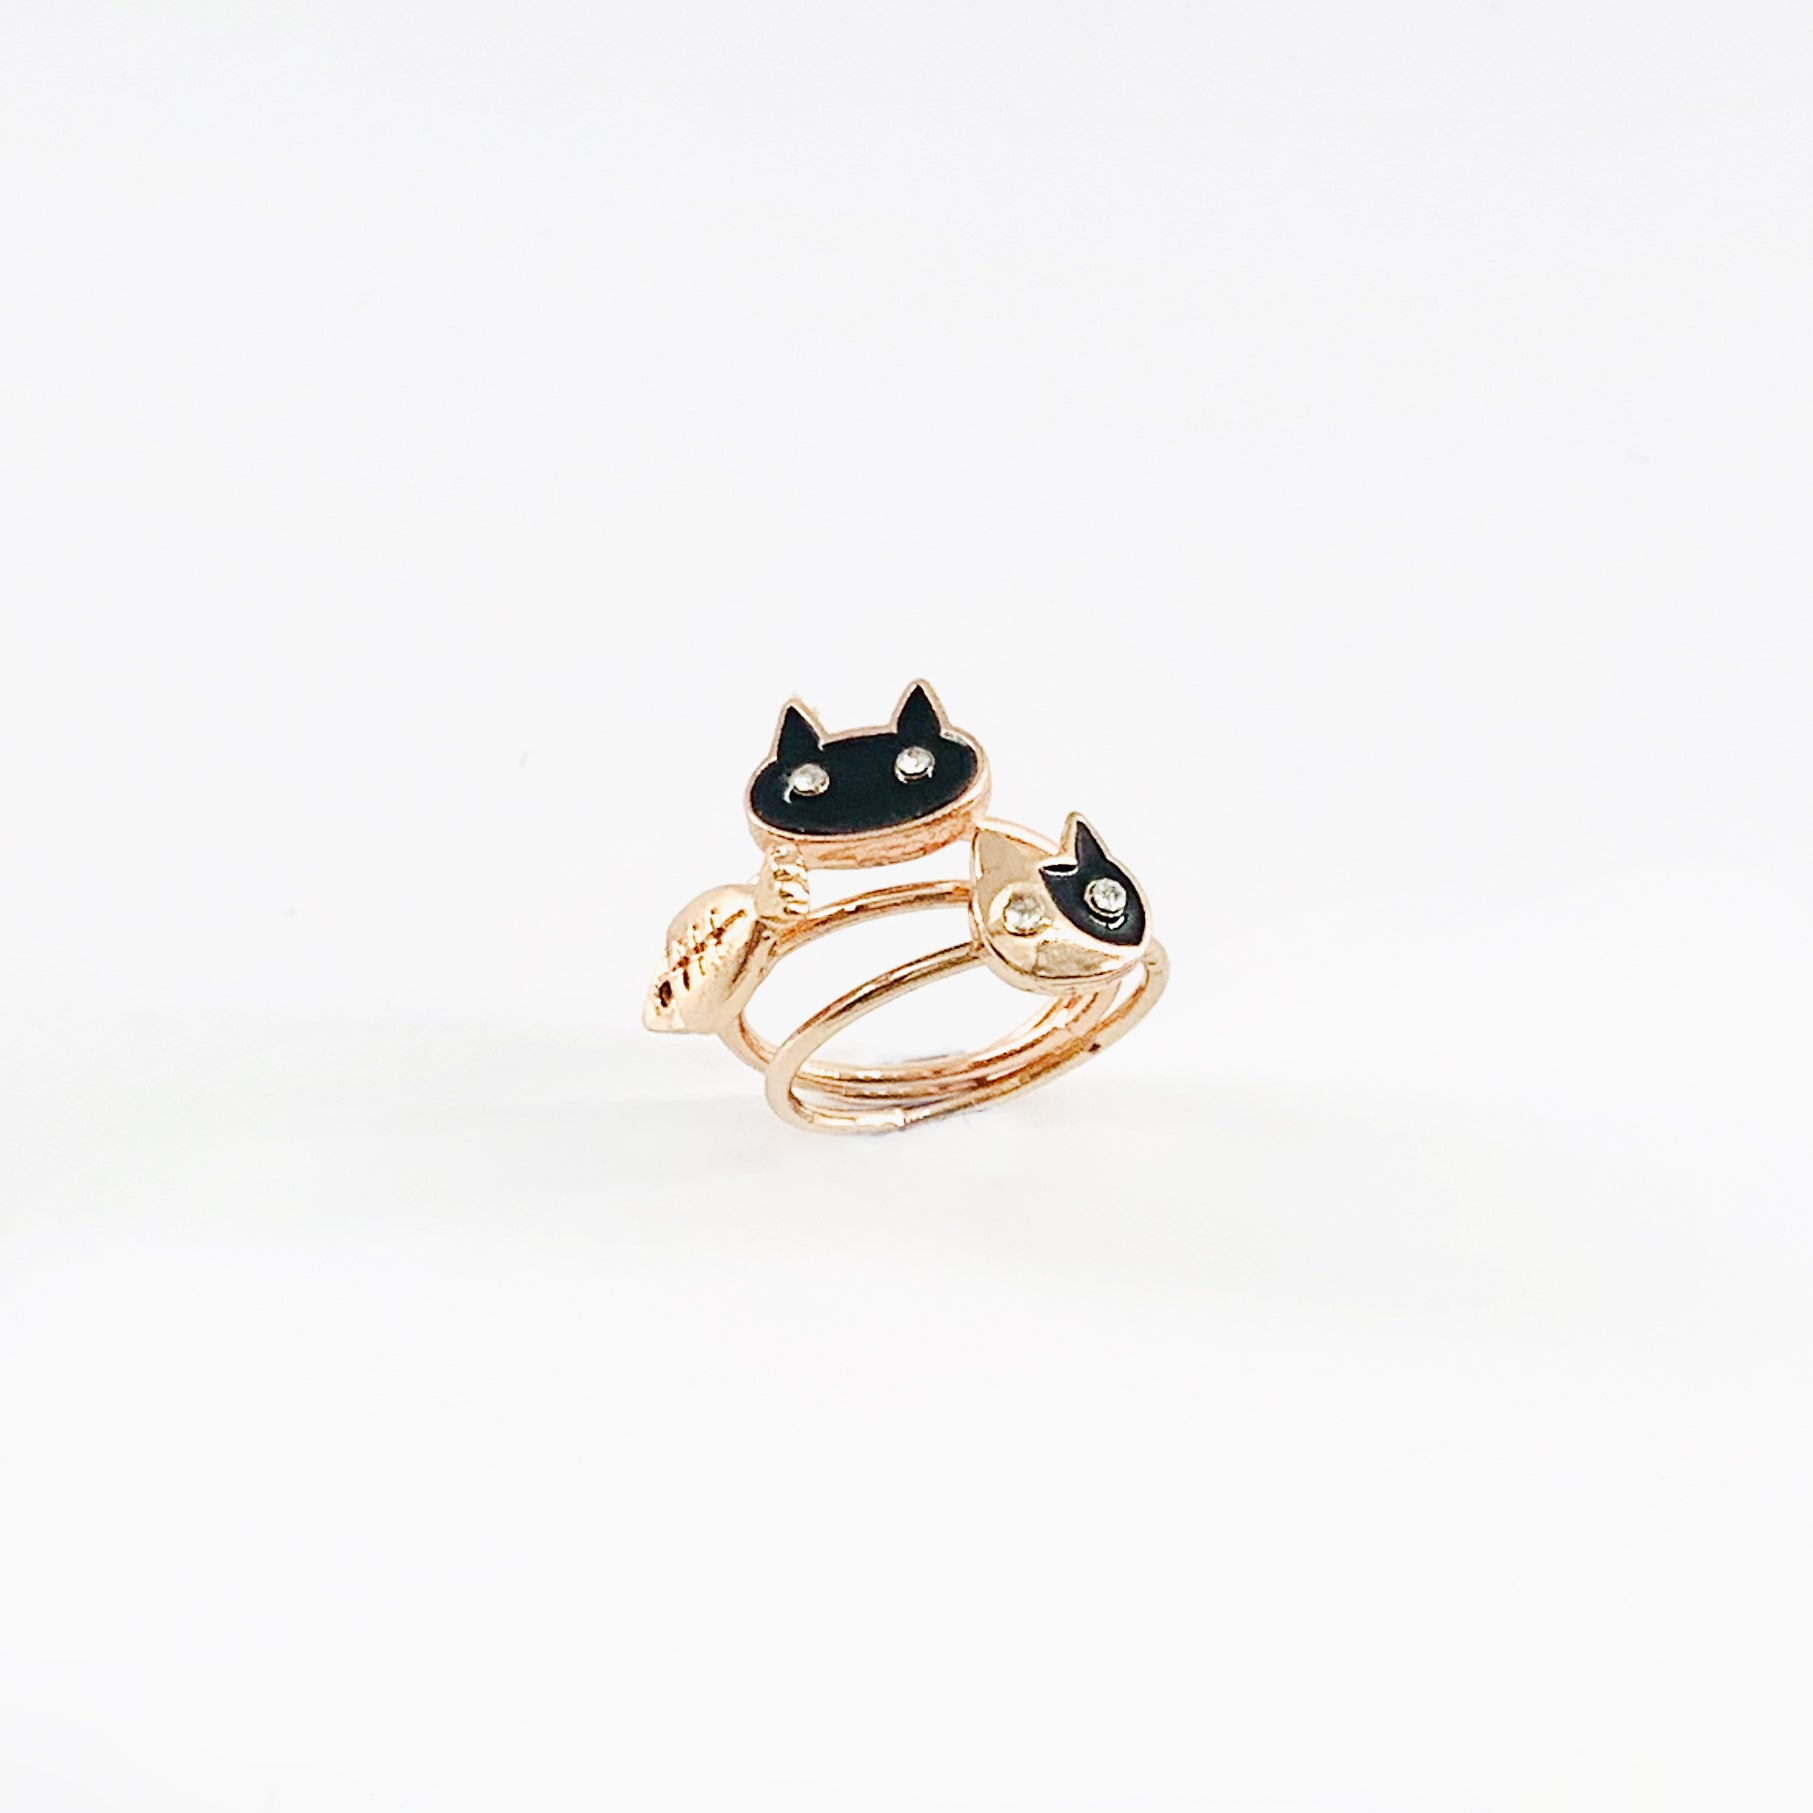 Cats and fish rose gold pinky rings